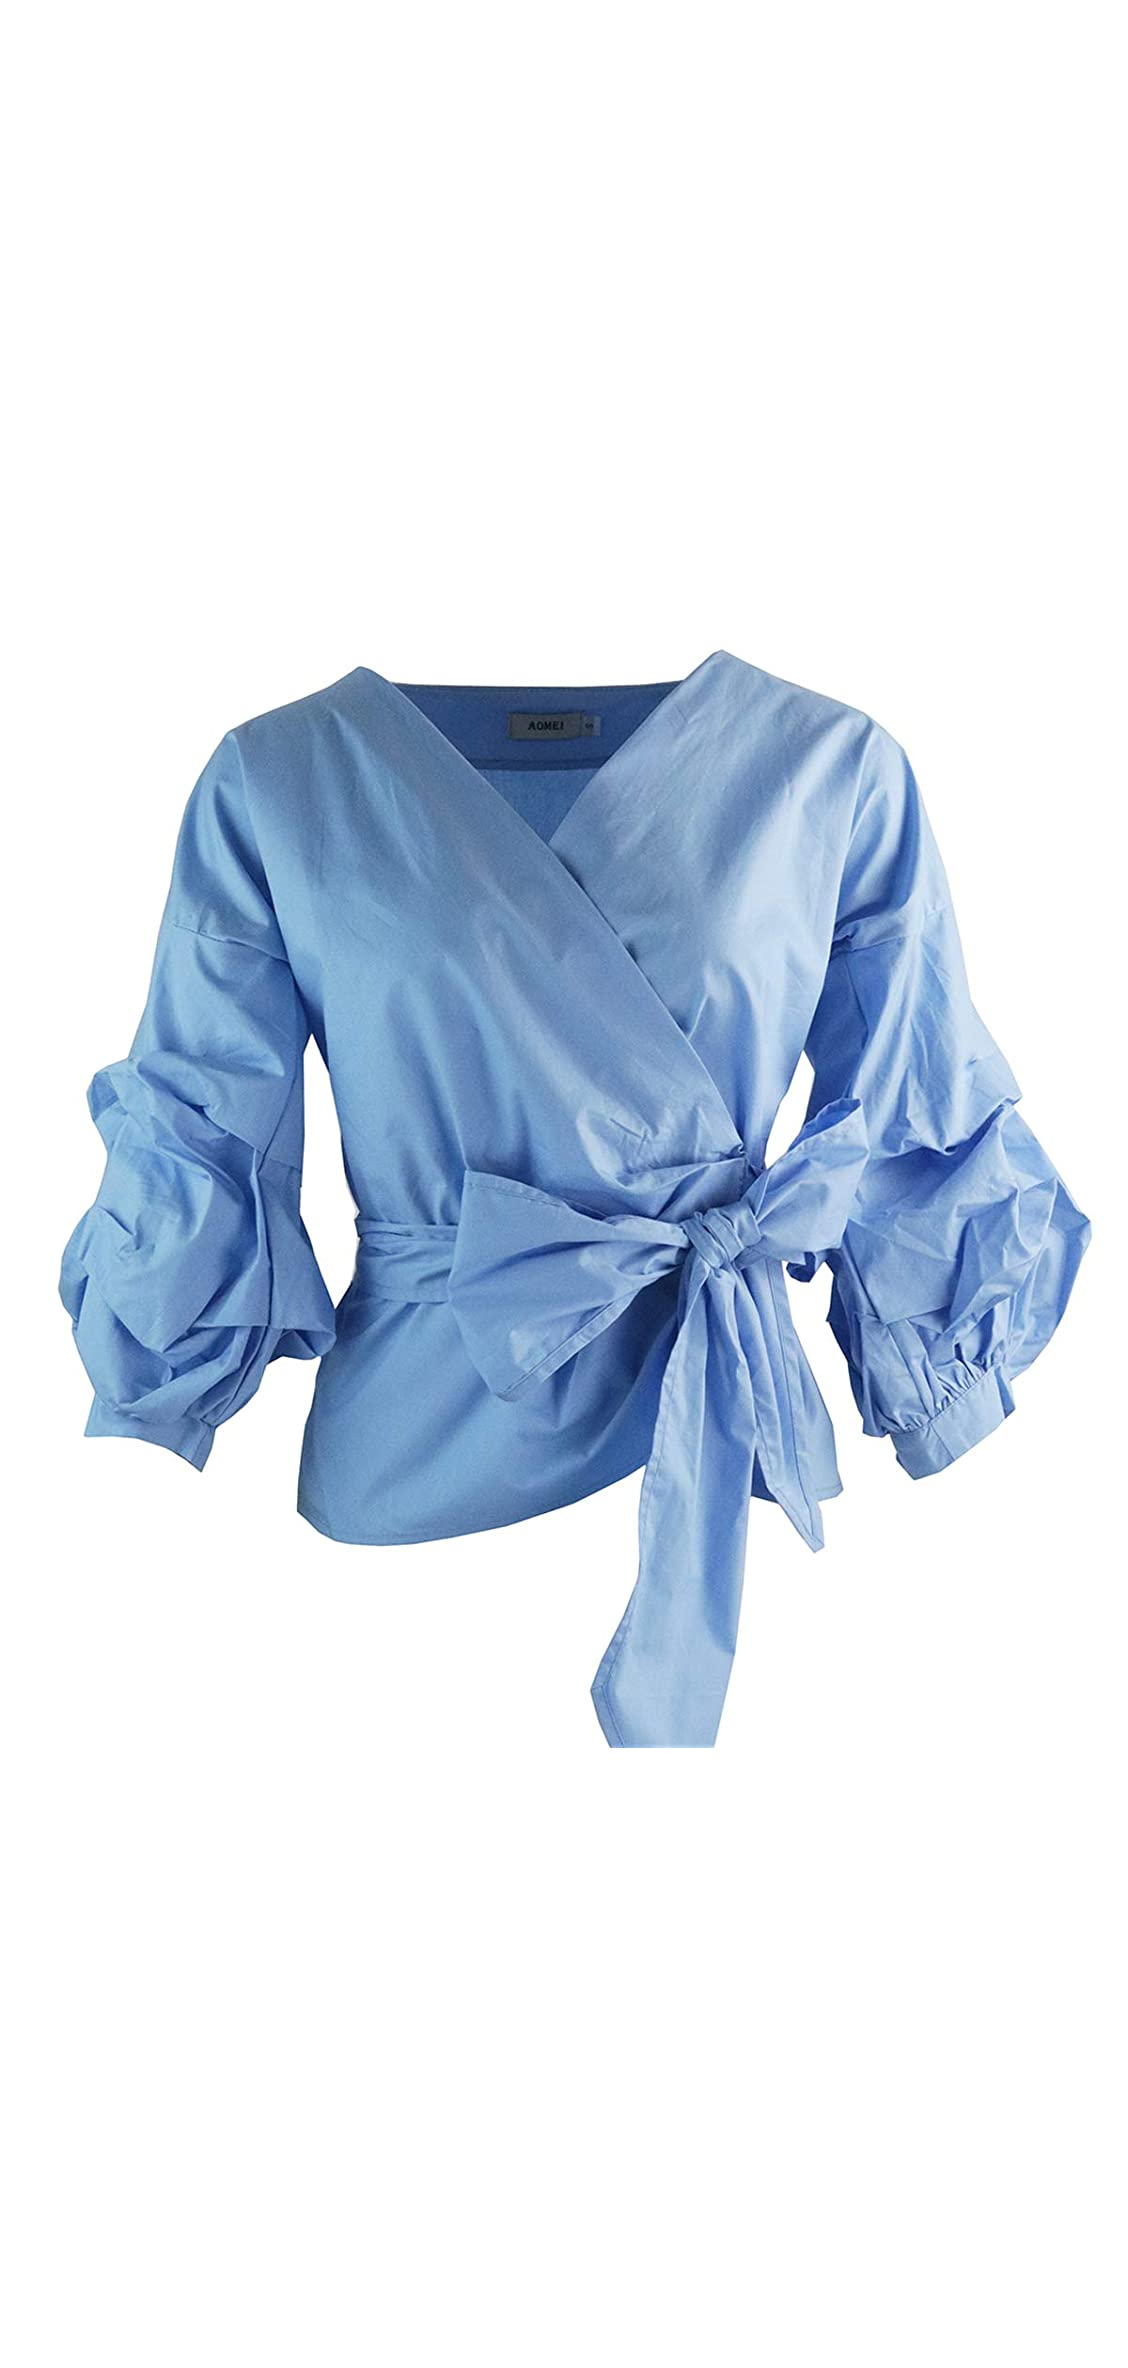 Women Spring Summer Blouses With Puff Sleeve Sashes Shirts